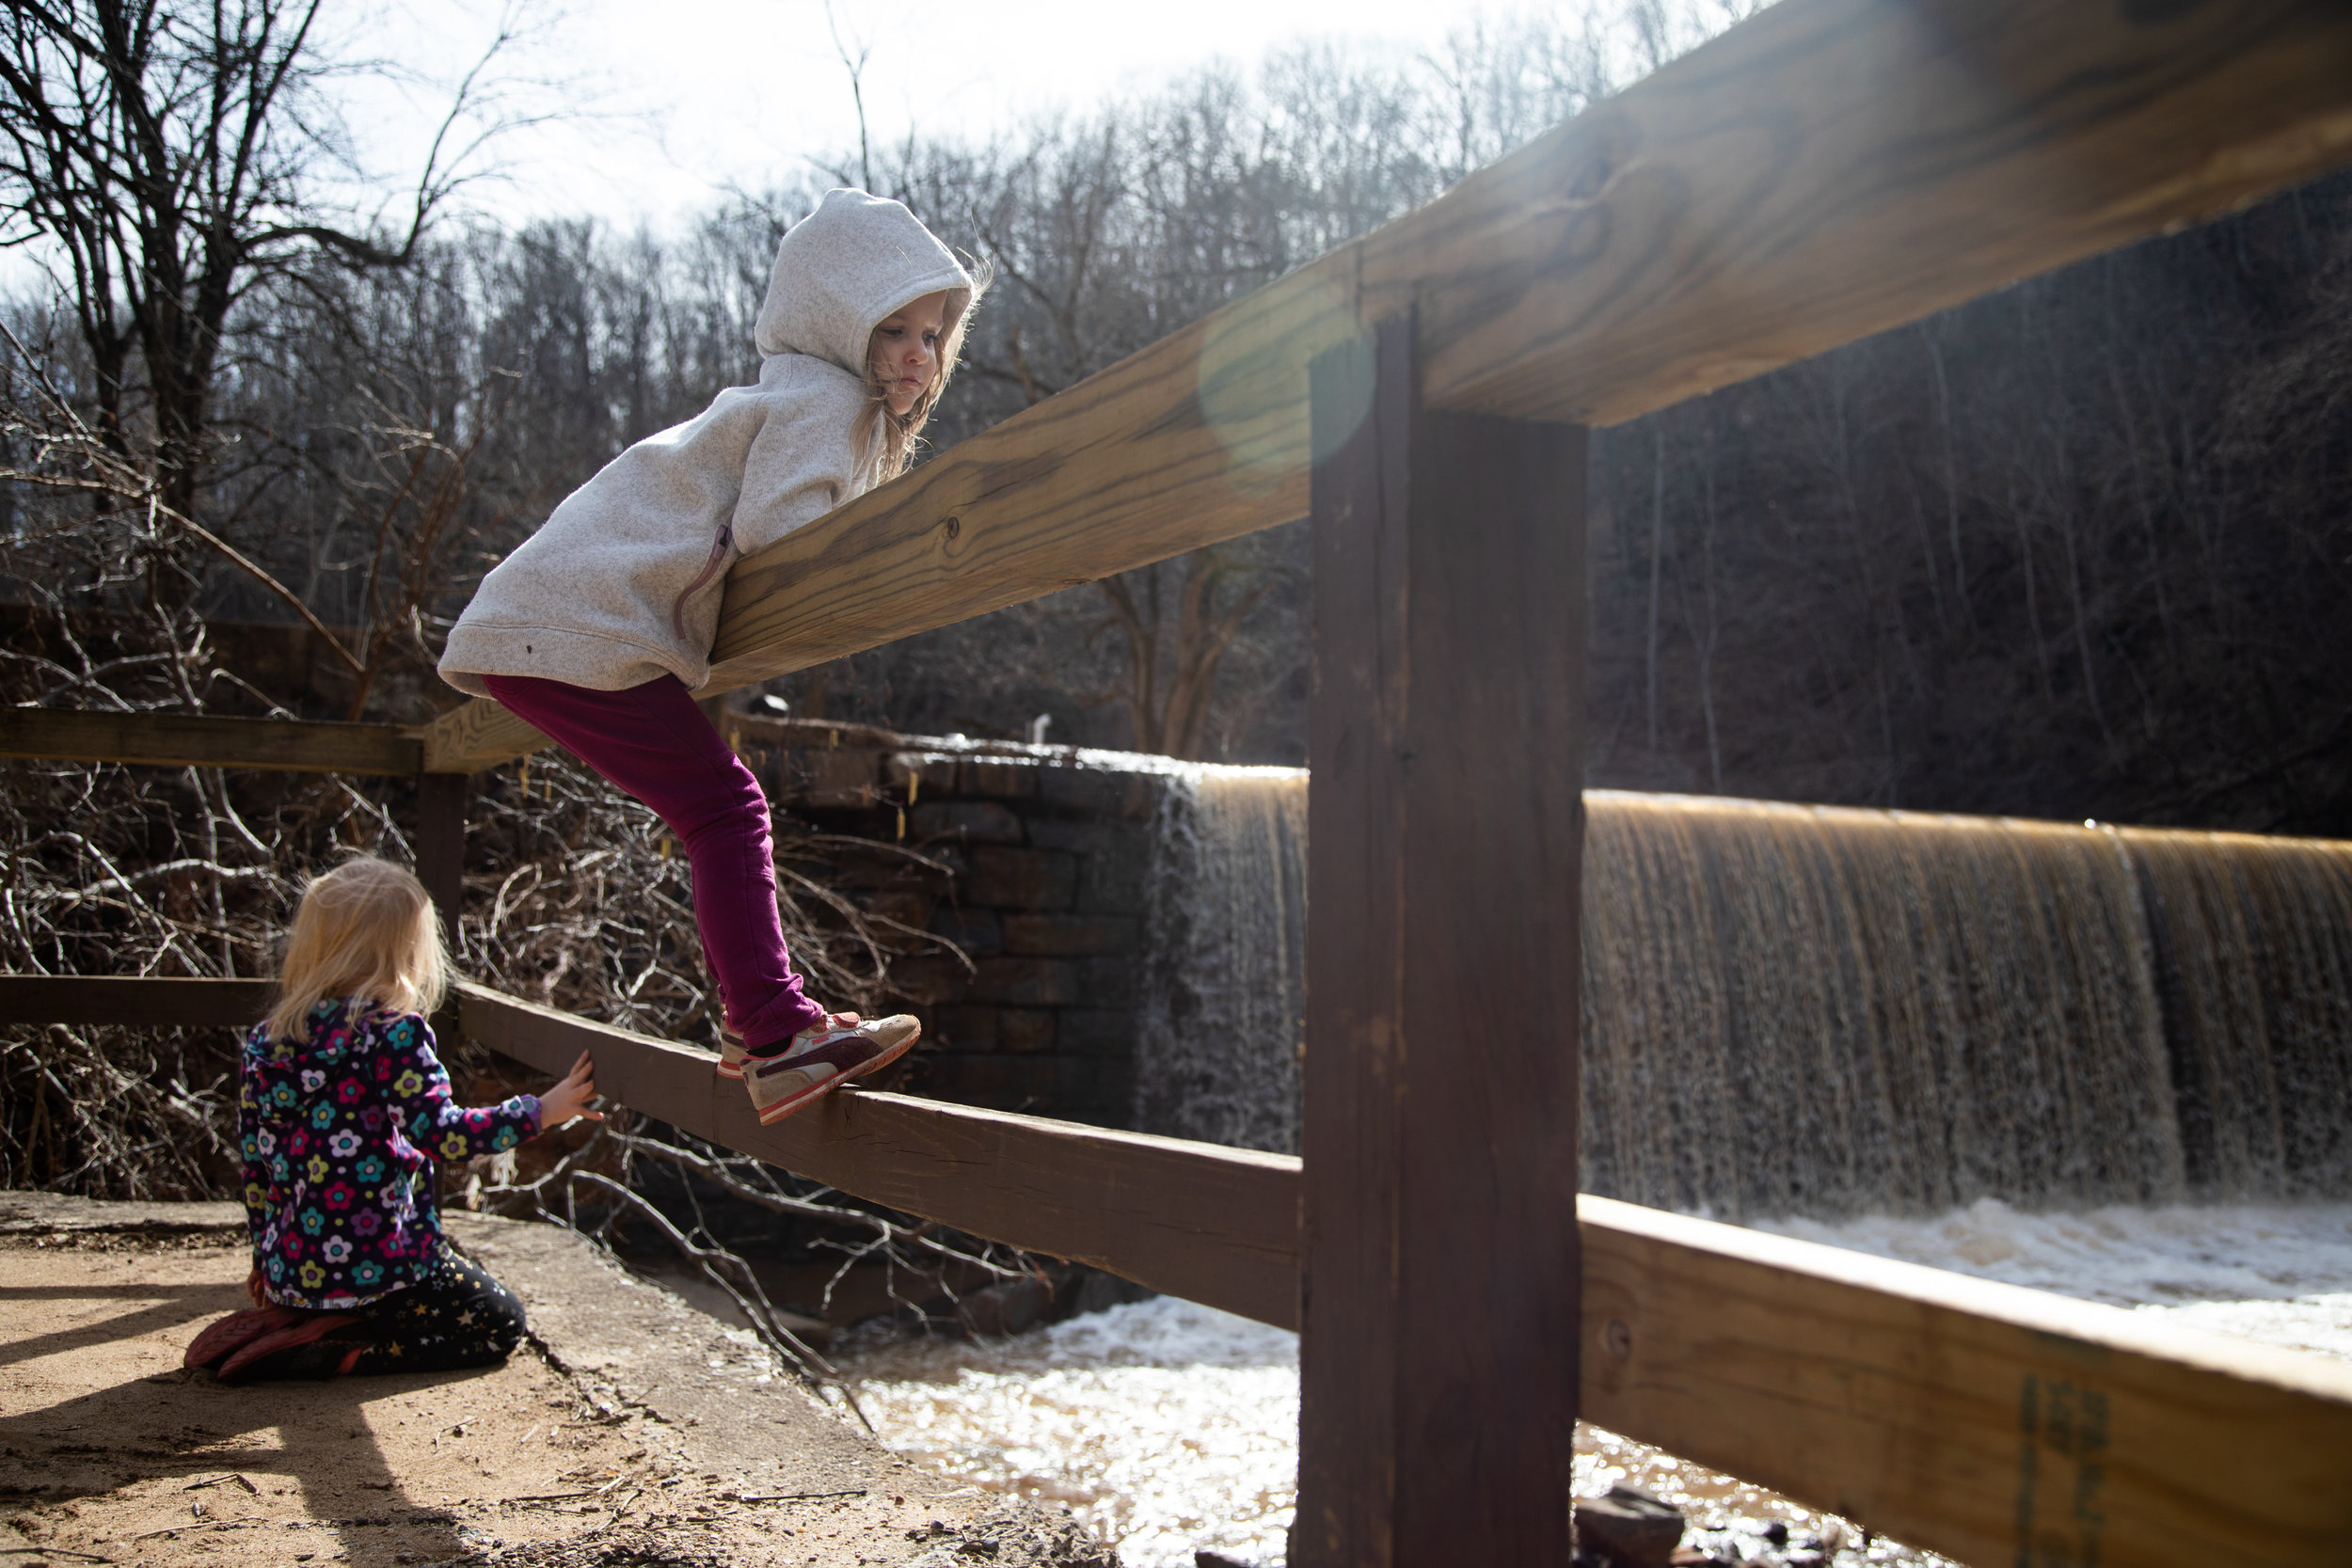 Avery Gentry, 4. and Calla Avondet, 4, exploring Hollins Mill Dam on Feb. 25, 2019 in Lynchburg, VA.